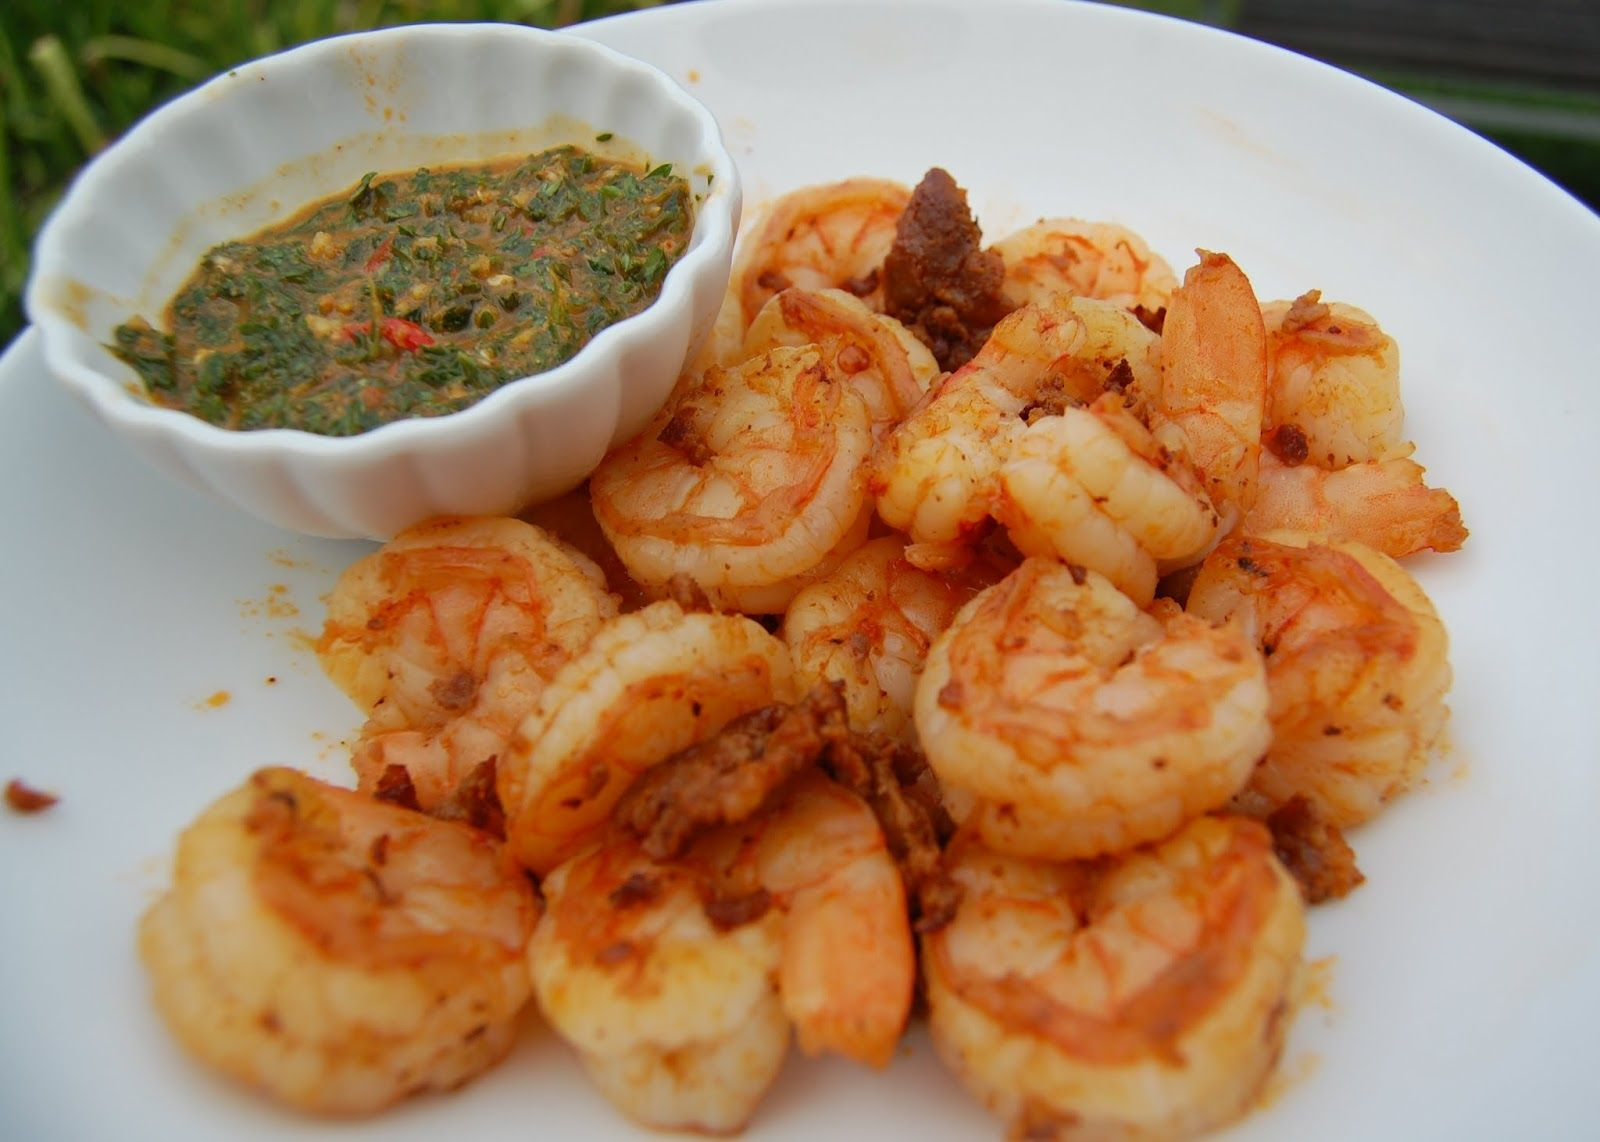 Got to try this Chermoula Sauce - Daily*Dishin: Shrimp and Chorizo with Red Pepper Chermoula Sauce #summerfest